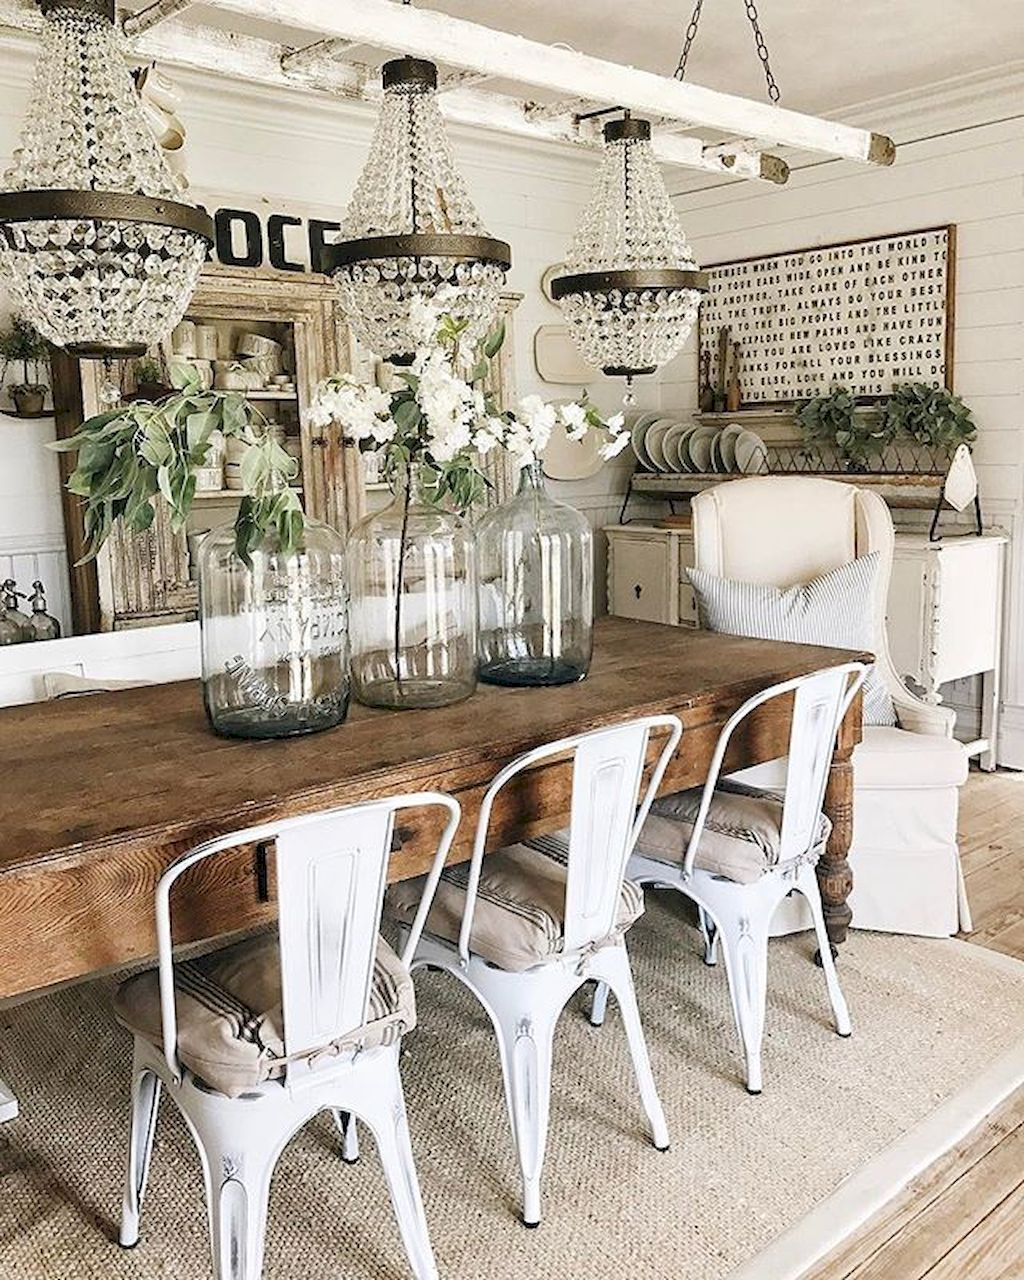 Casual Dining Rooms Decorating Ideas For A Soothing Interior: Pin By BesideRoom On Interior & Furniture Ideas